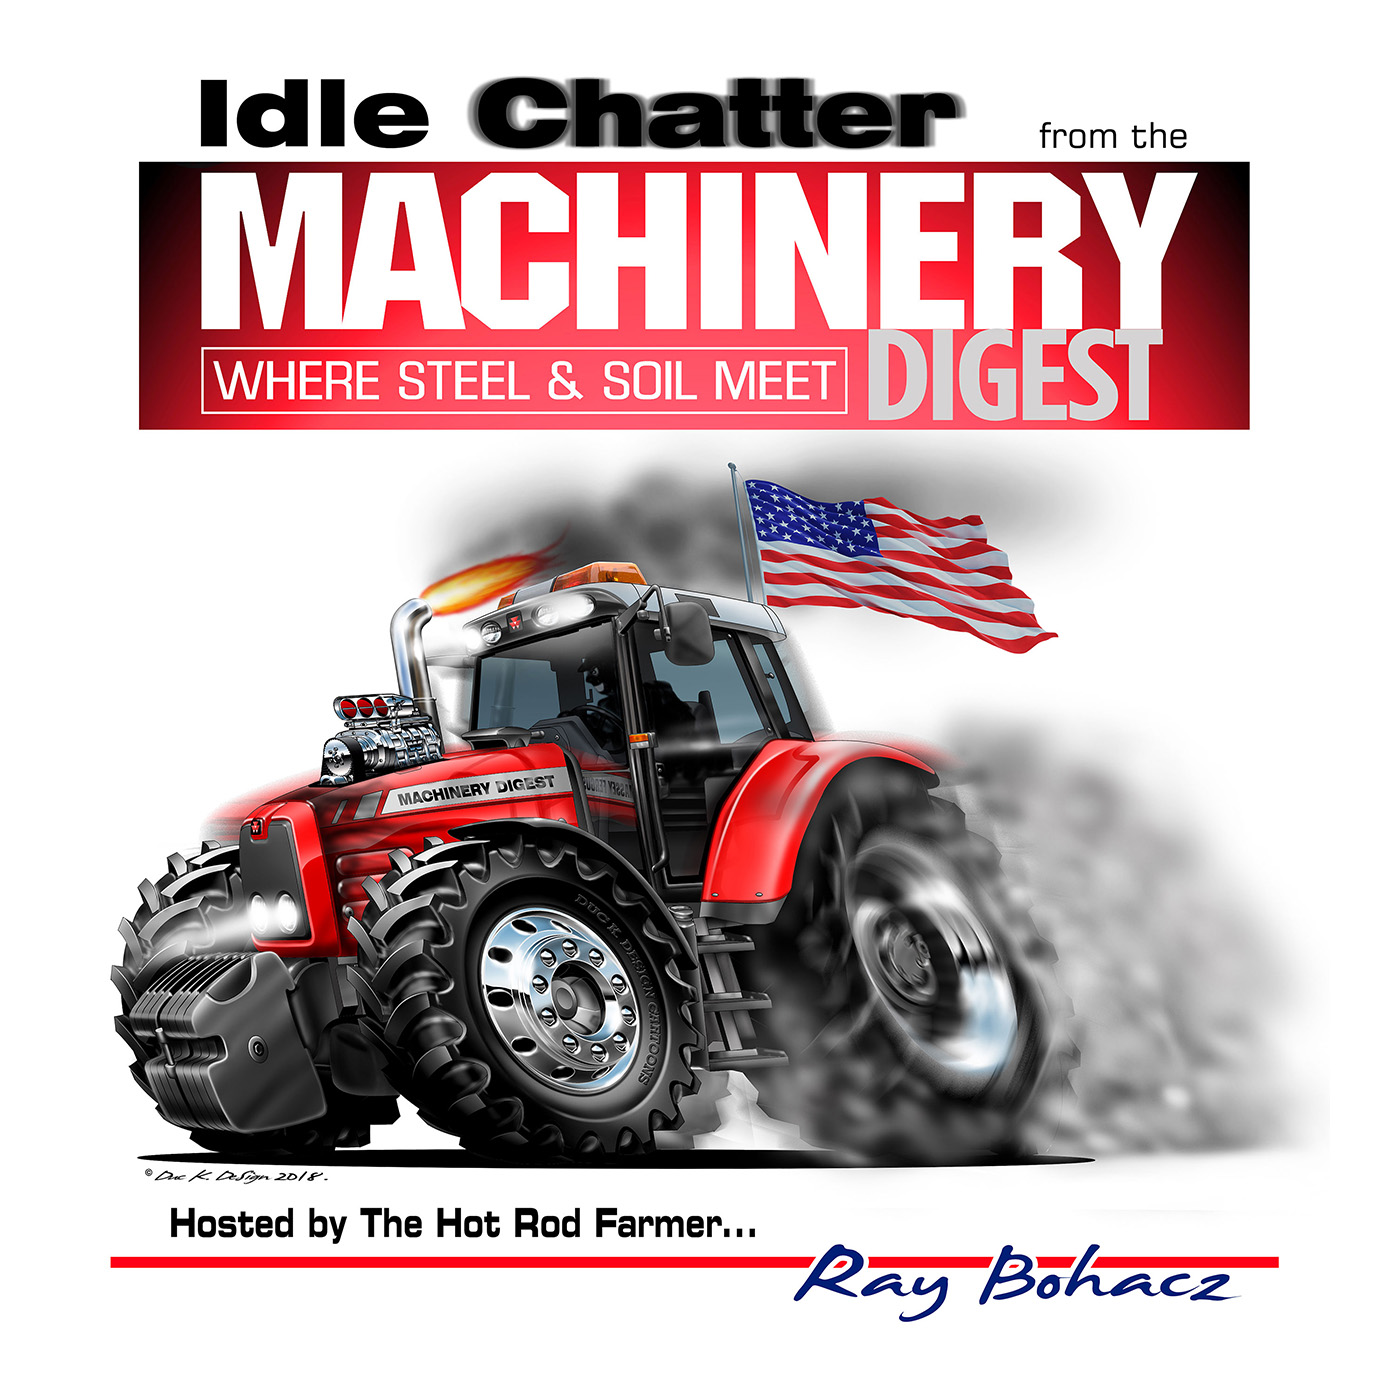 Idle Chatter: Hot Rod Farmer